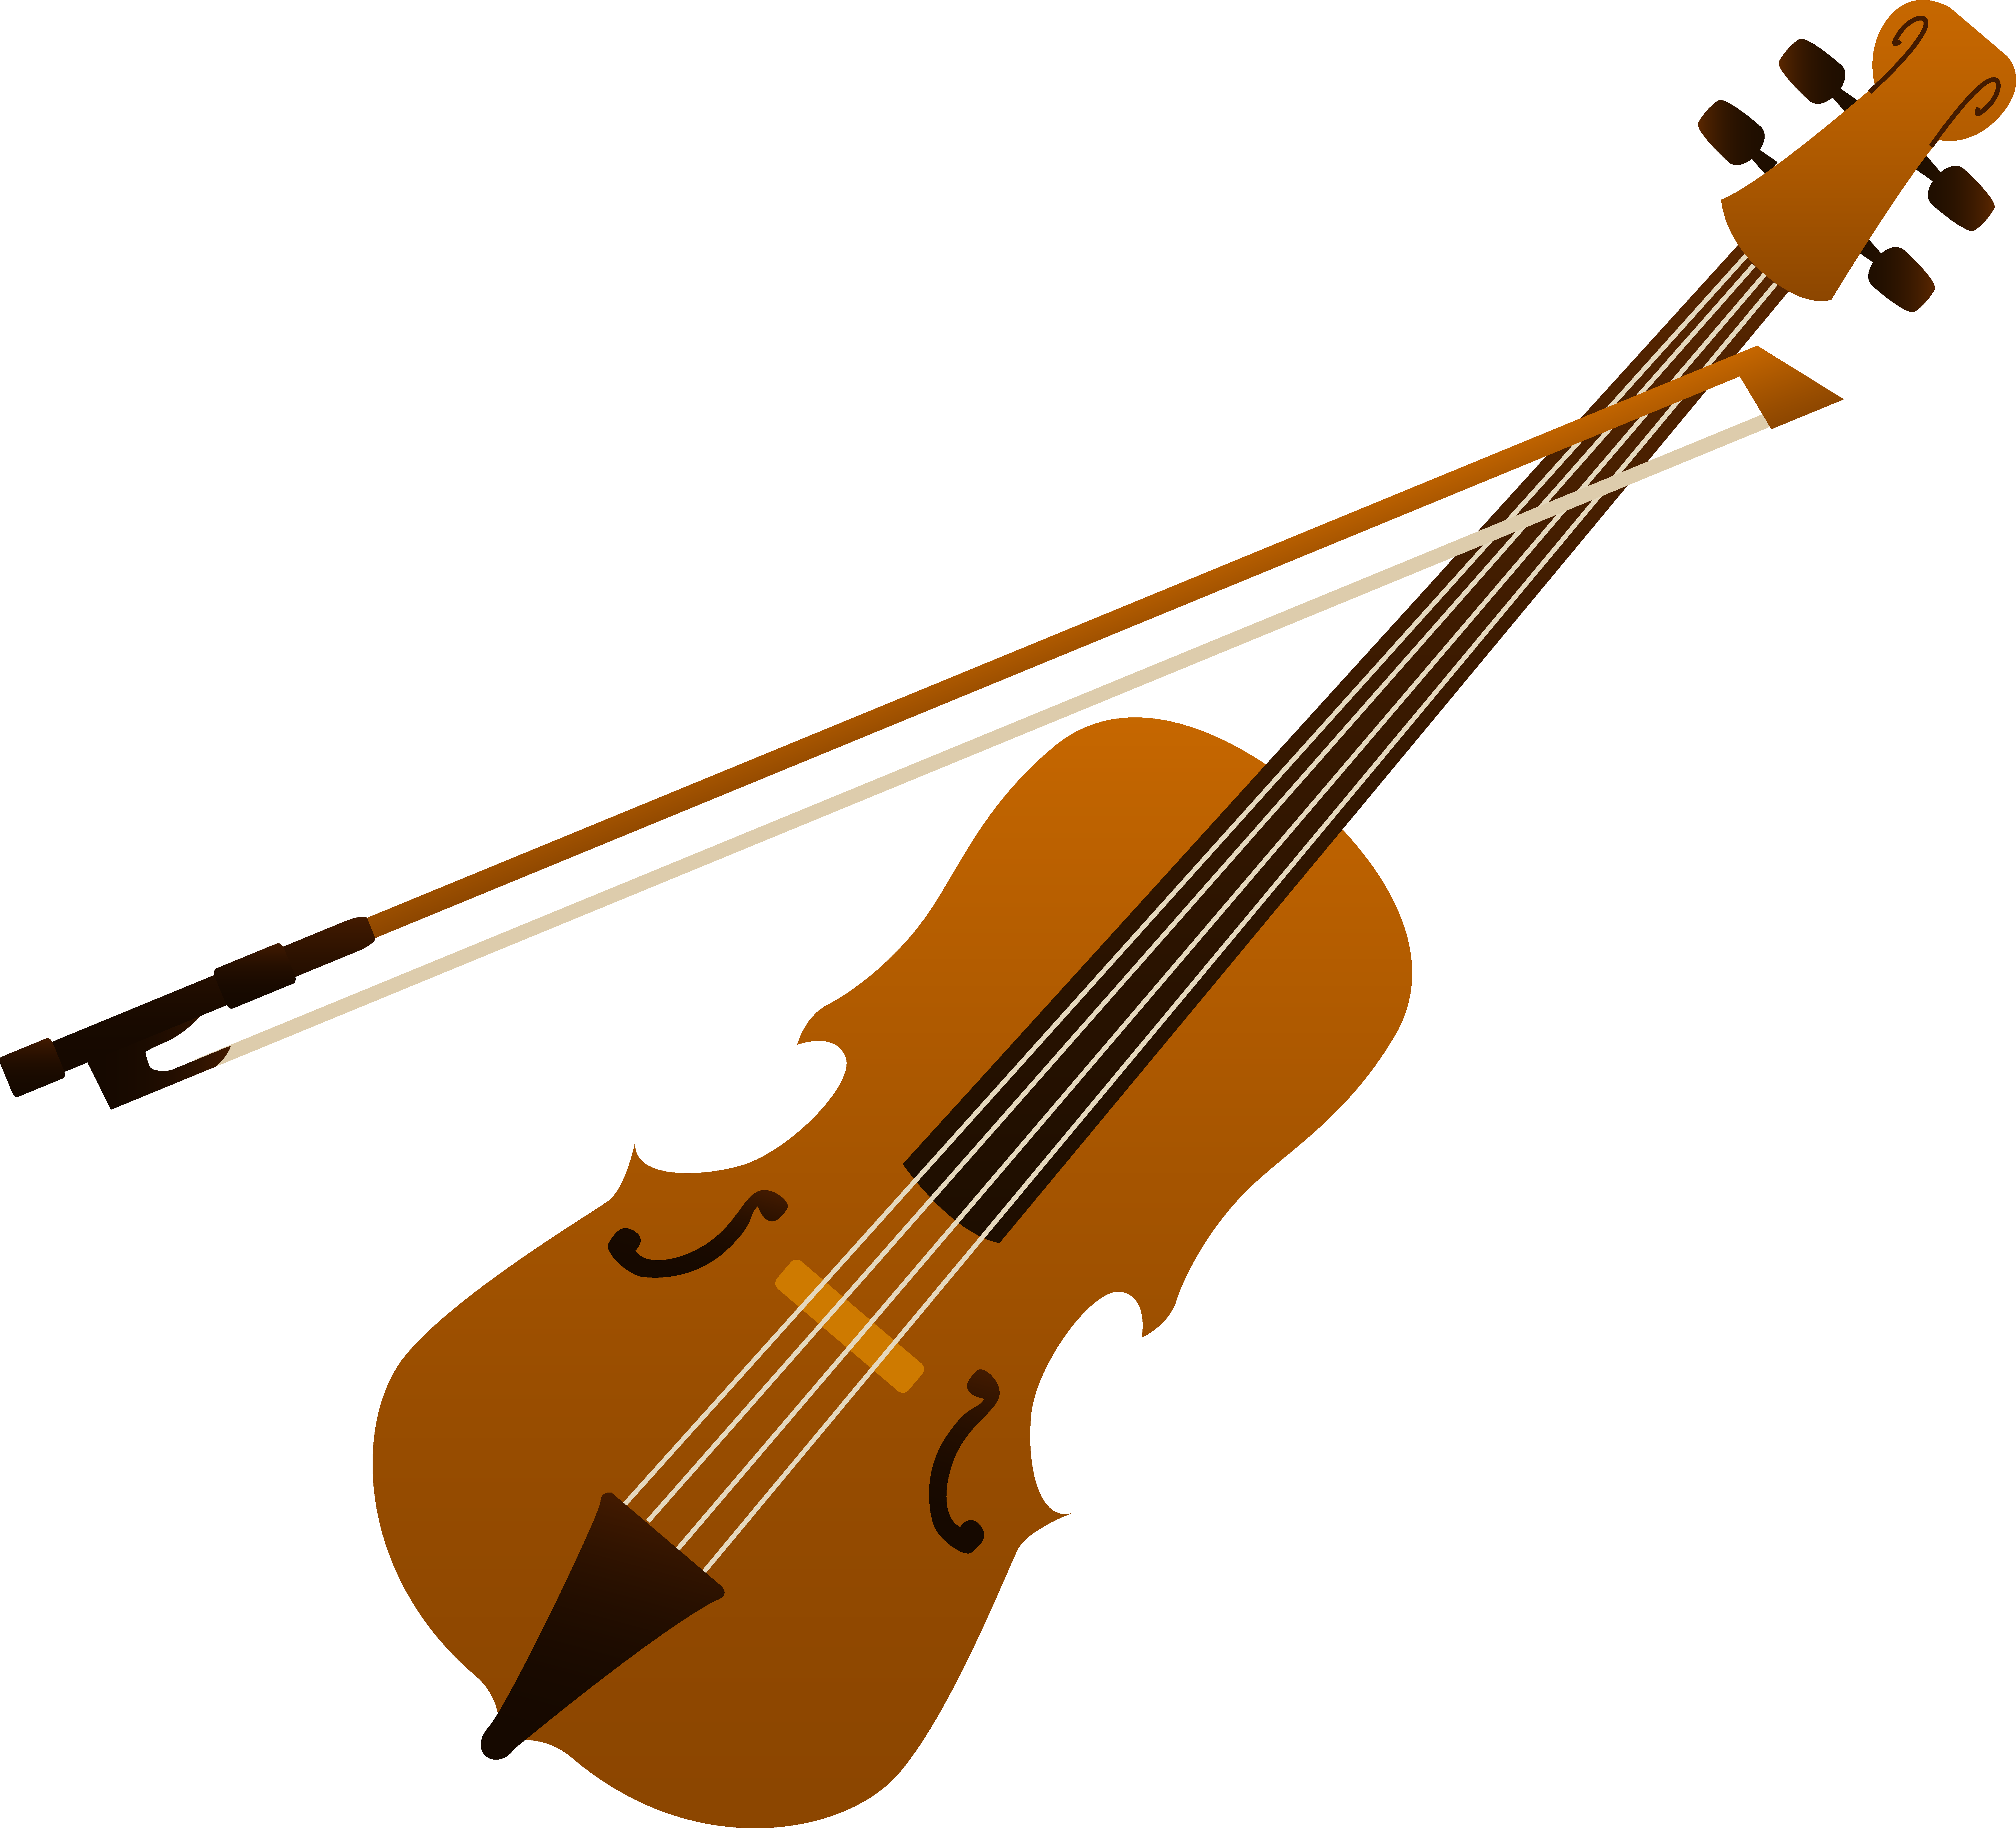 Stringed instruments clipart #19